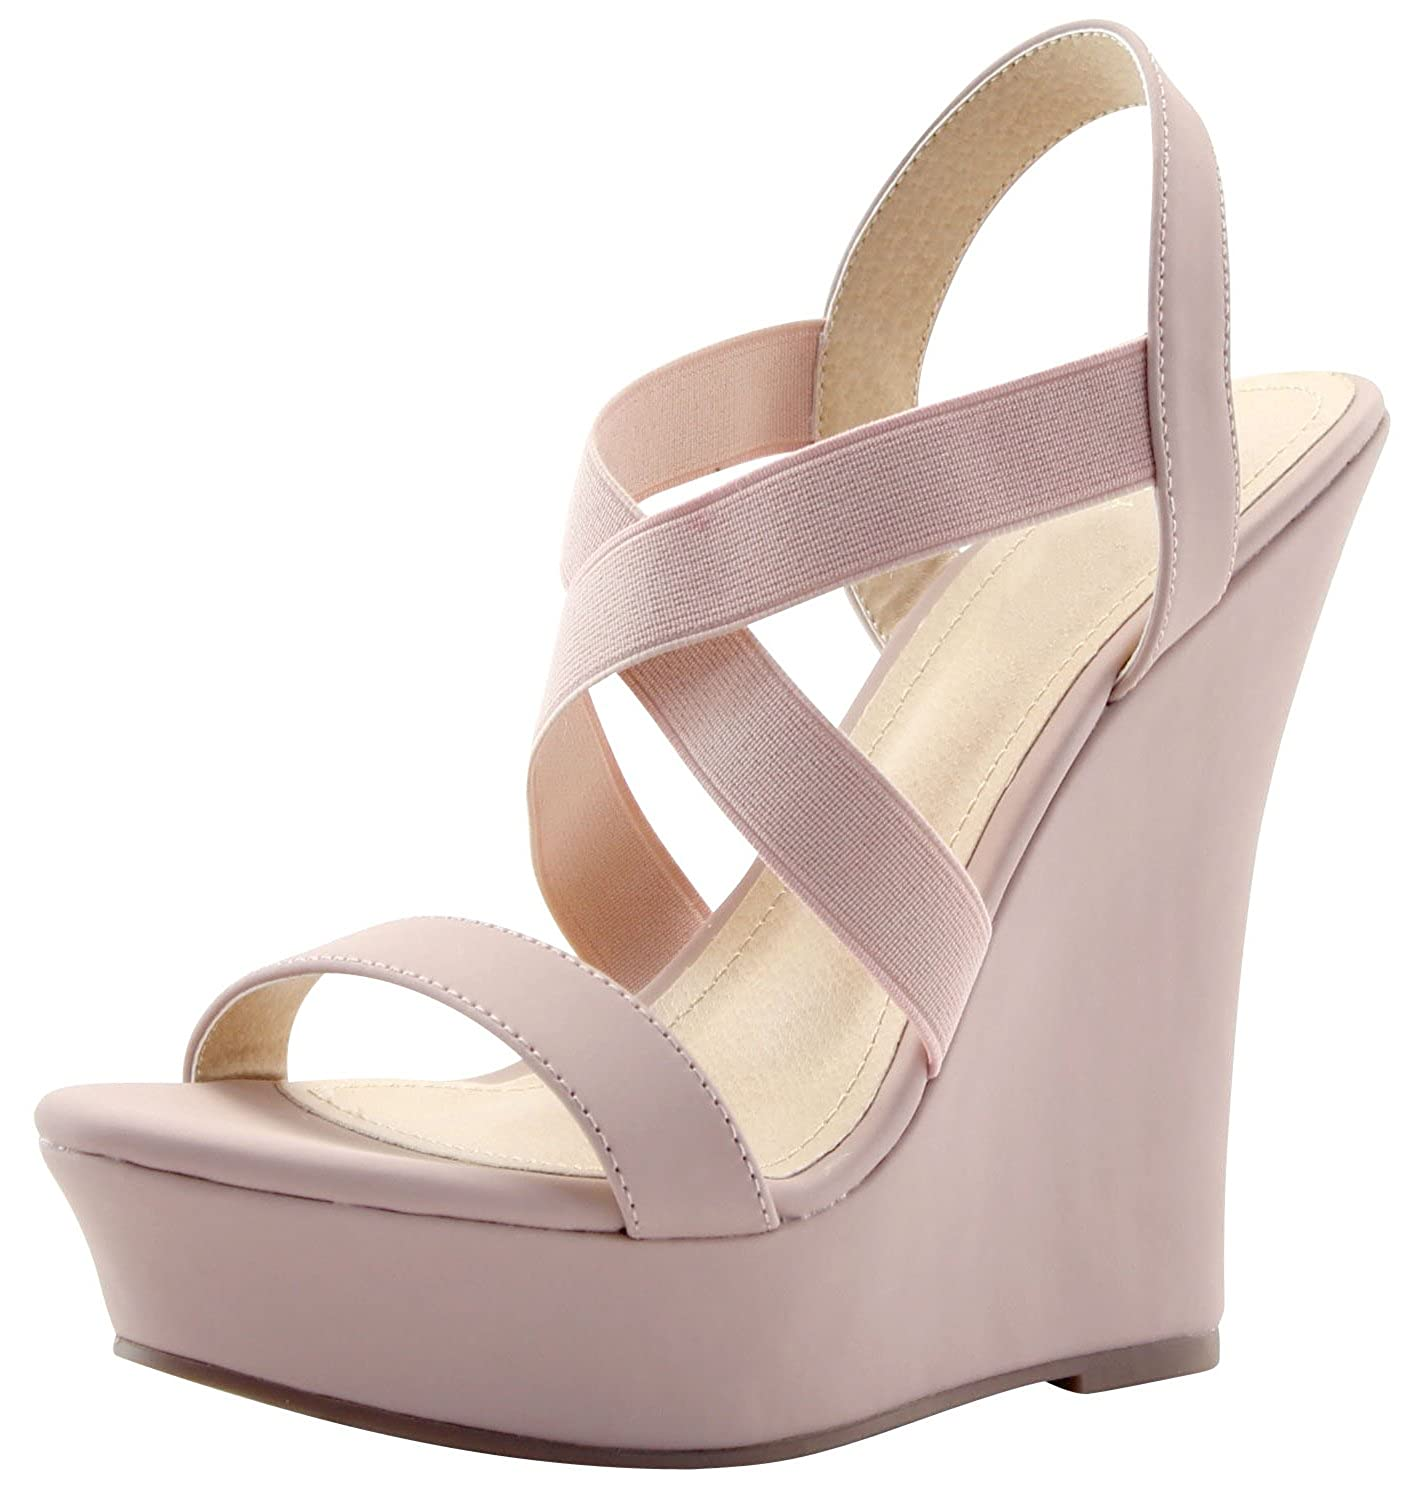 6a539bbff With stretch elastic straps and a generous platform to balance a high  wedge